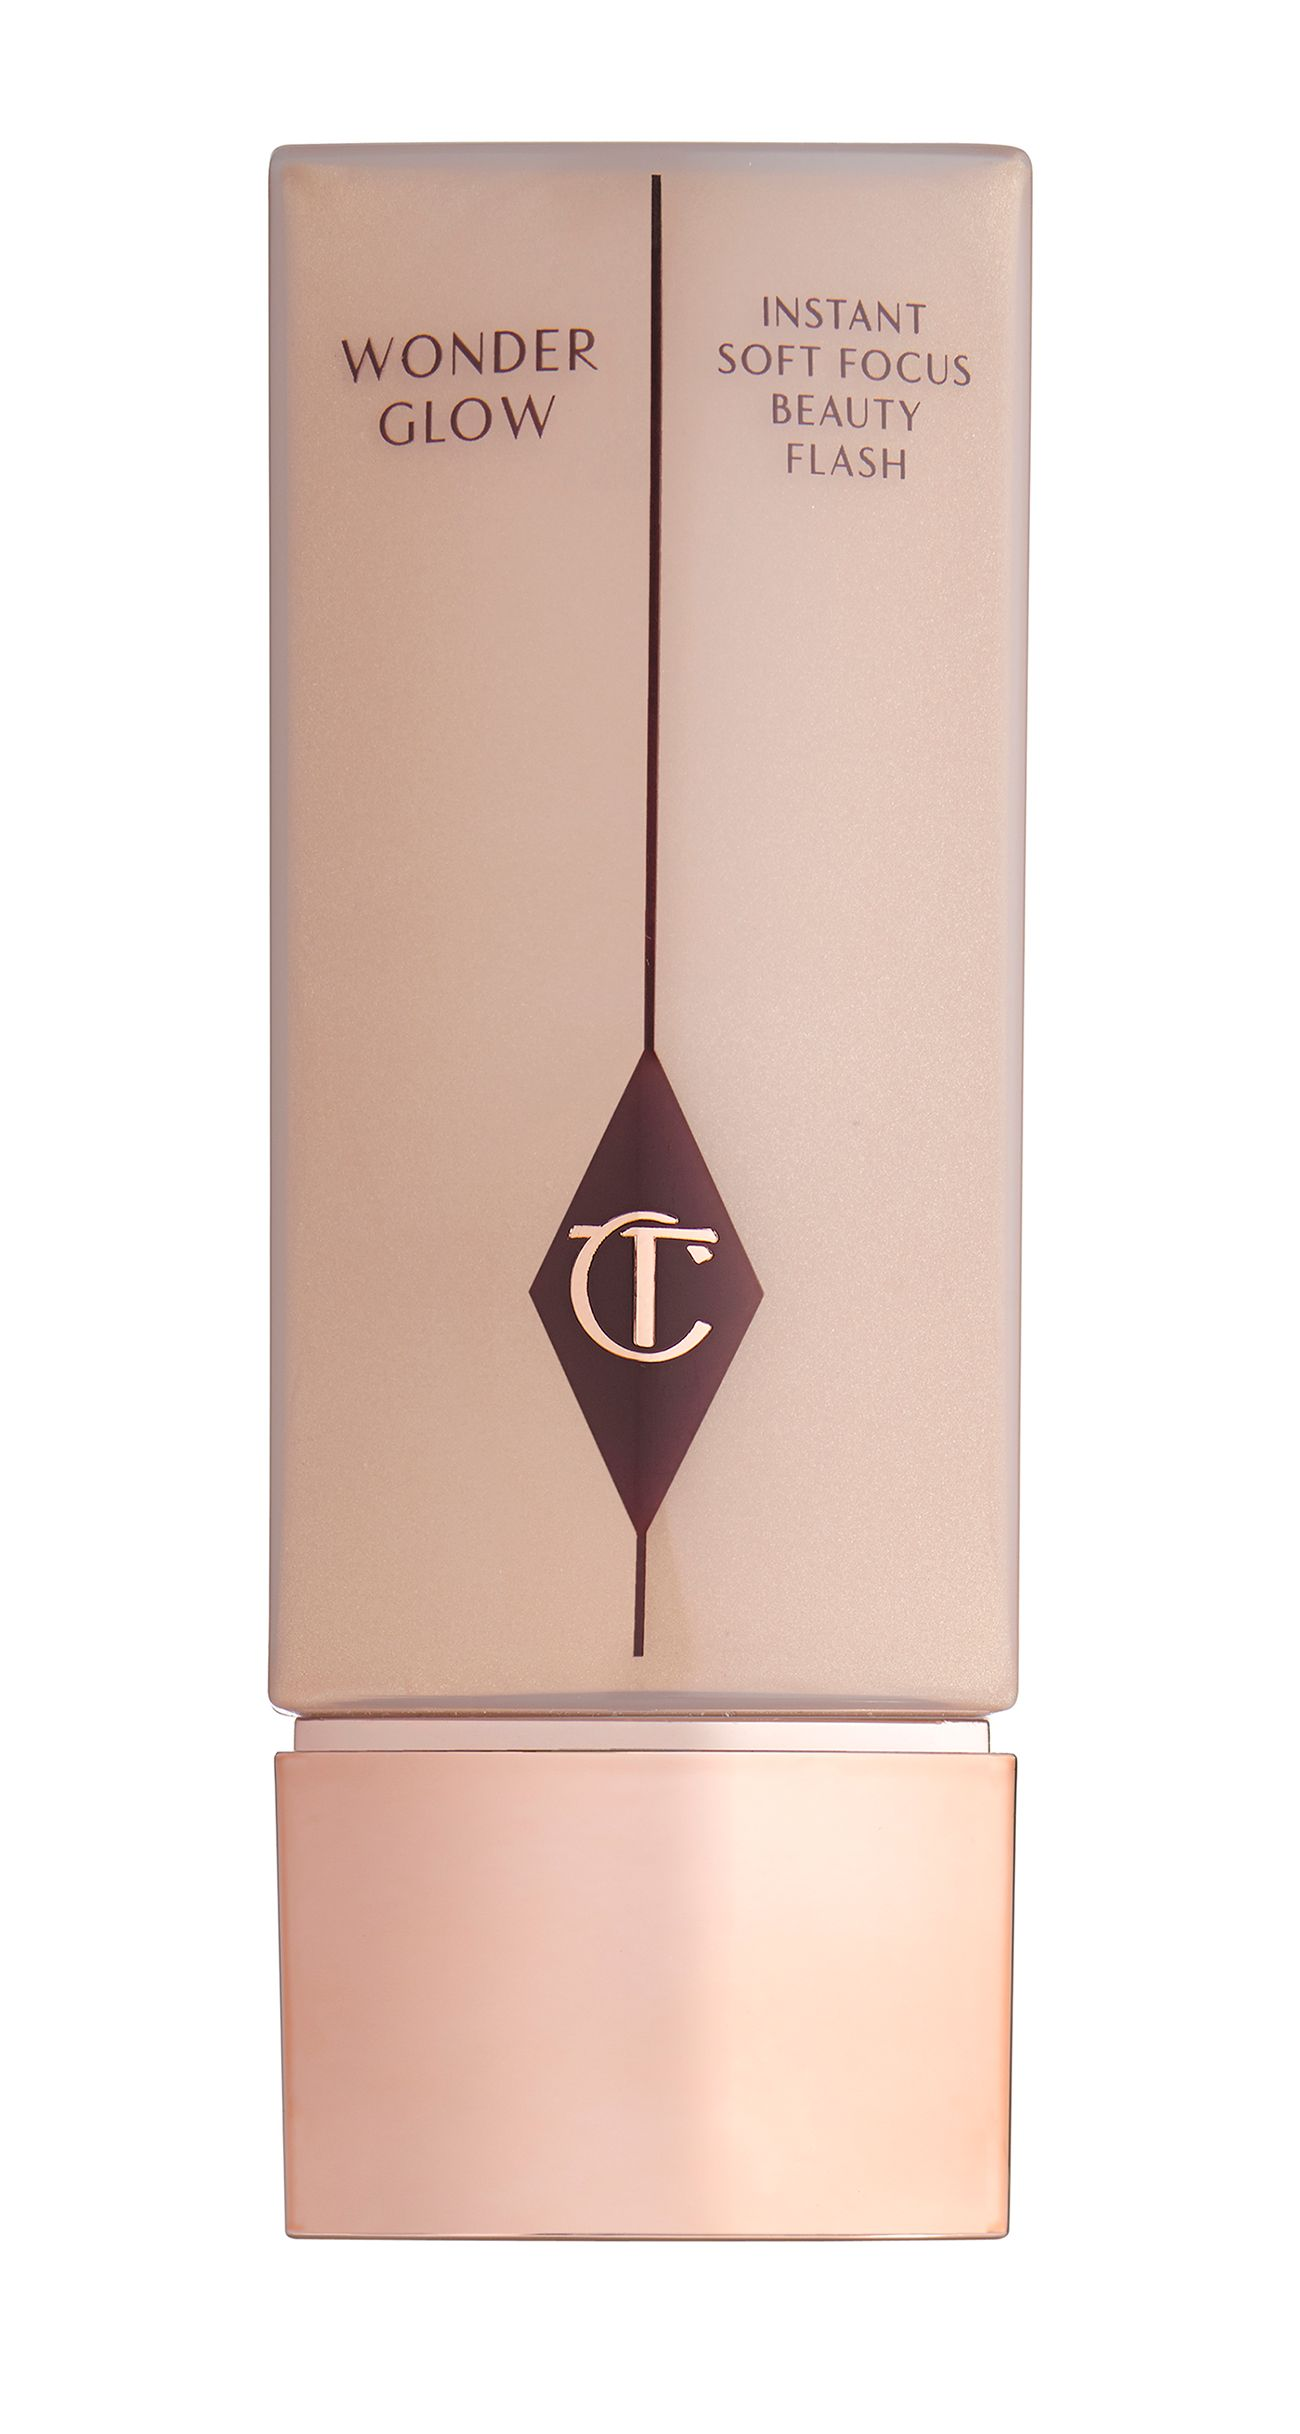 Charlotte Tilbury Wonderglow Instant SoftFocus Beauty Flash Primer